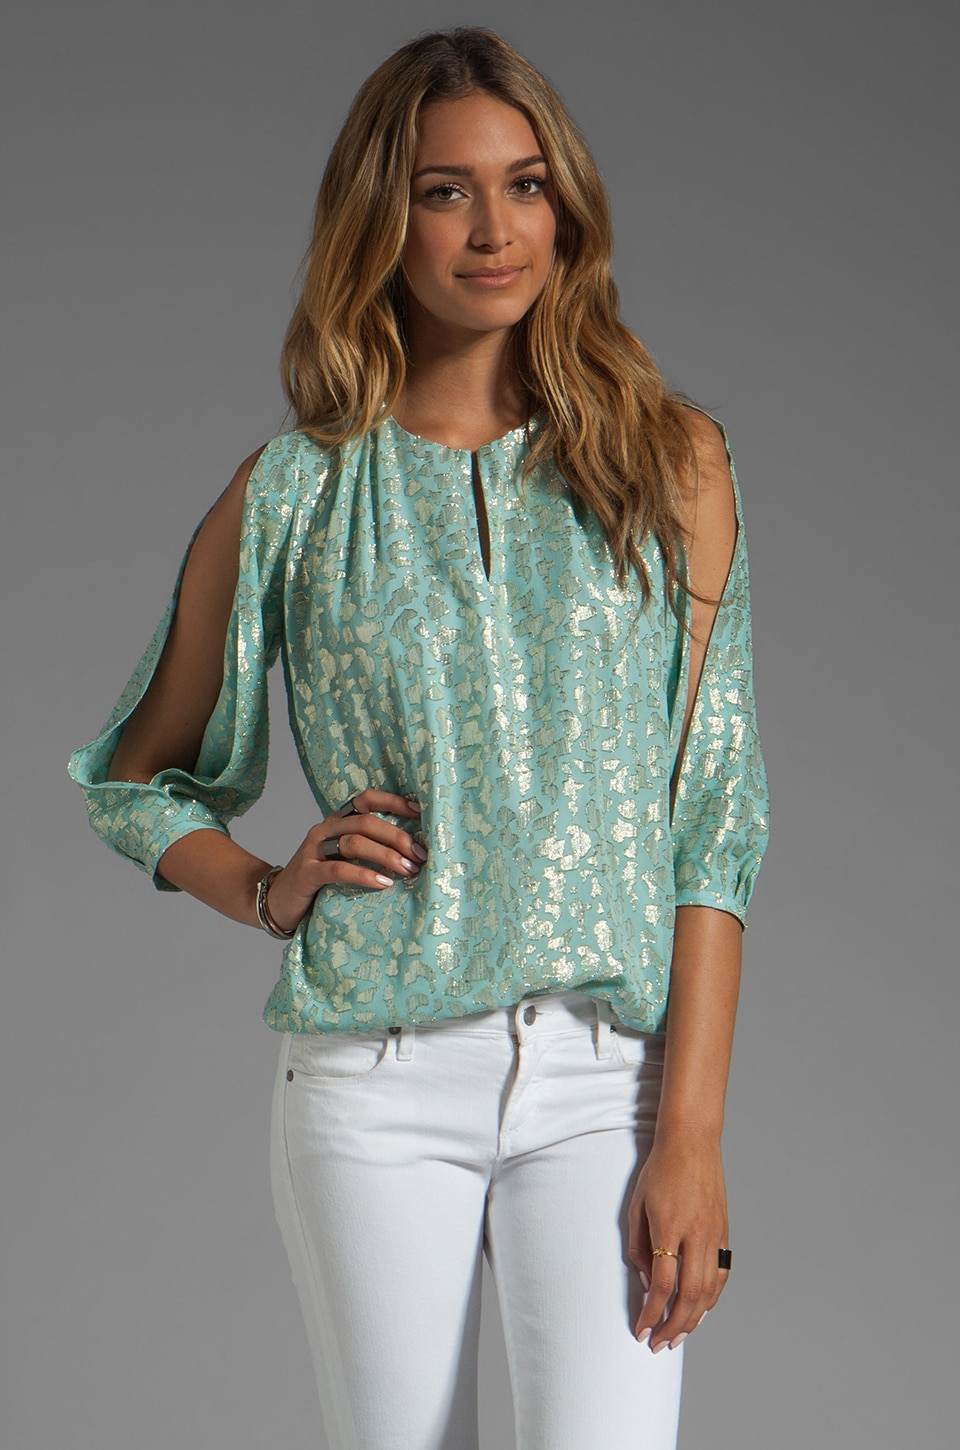 Diane von Furstenberg Astor Top in Pelican Blue/Gold